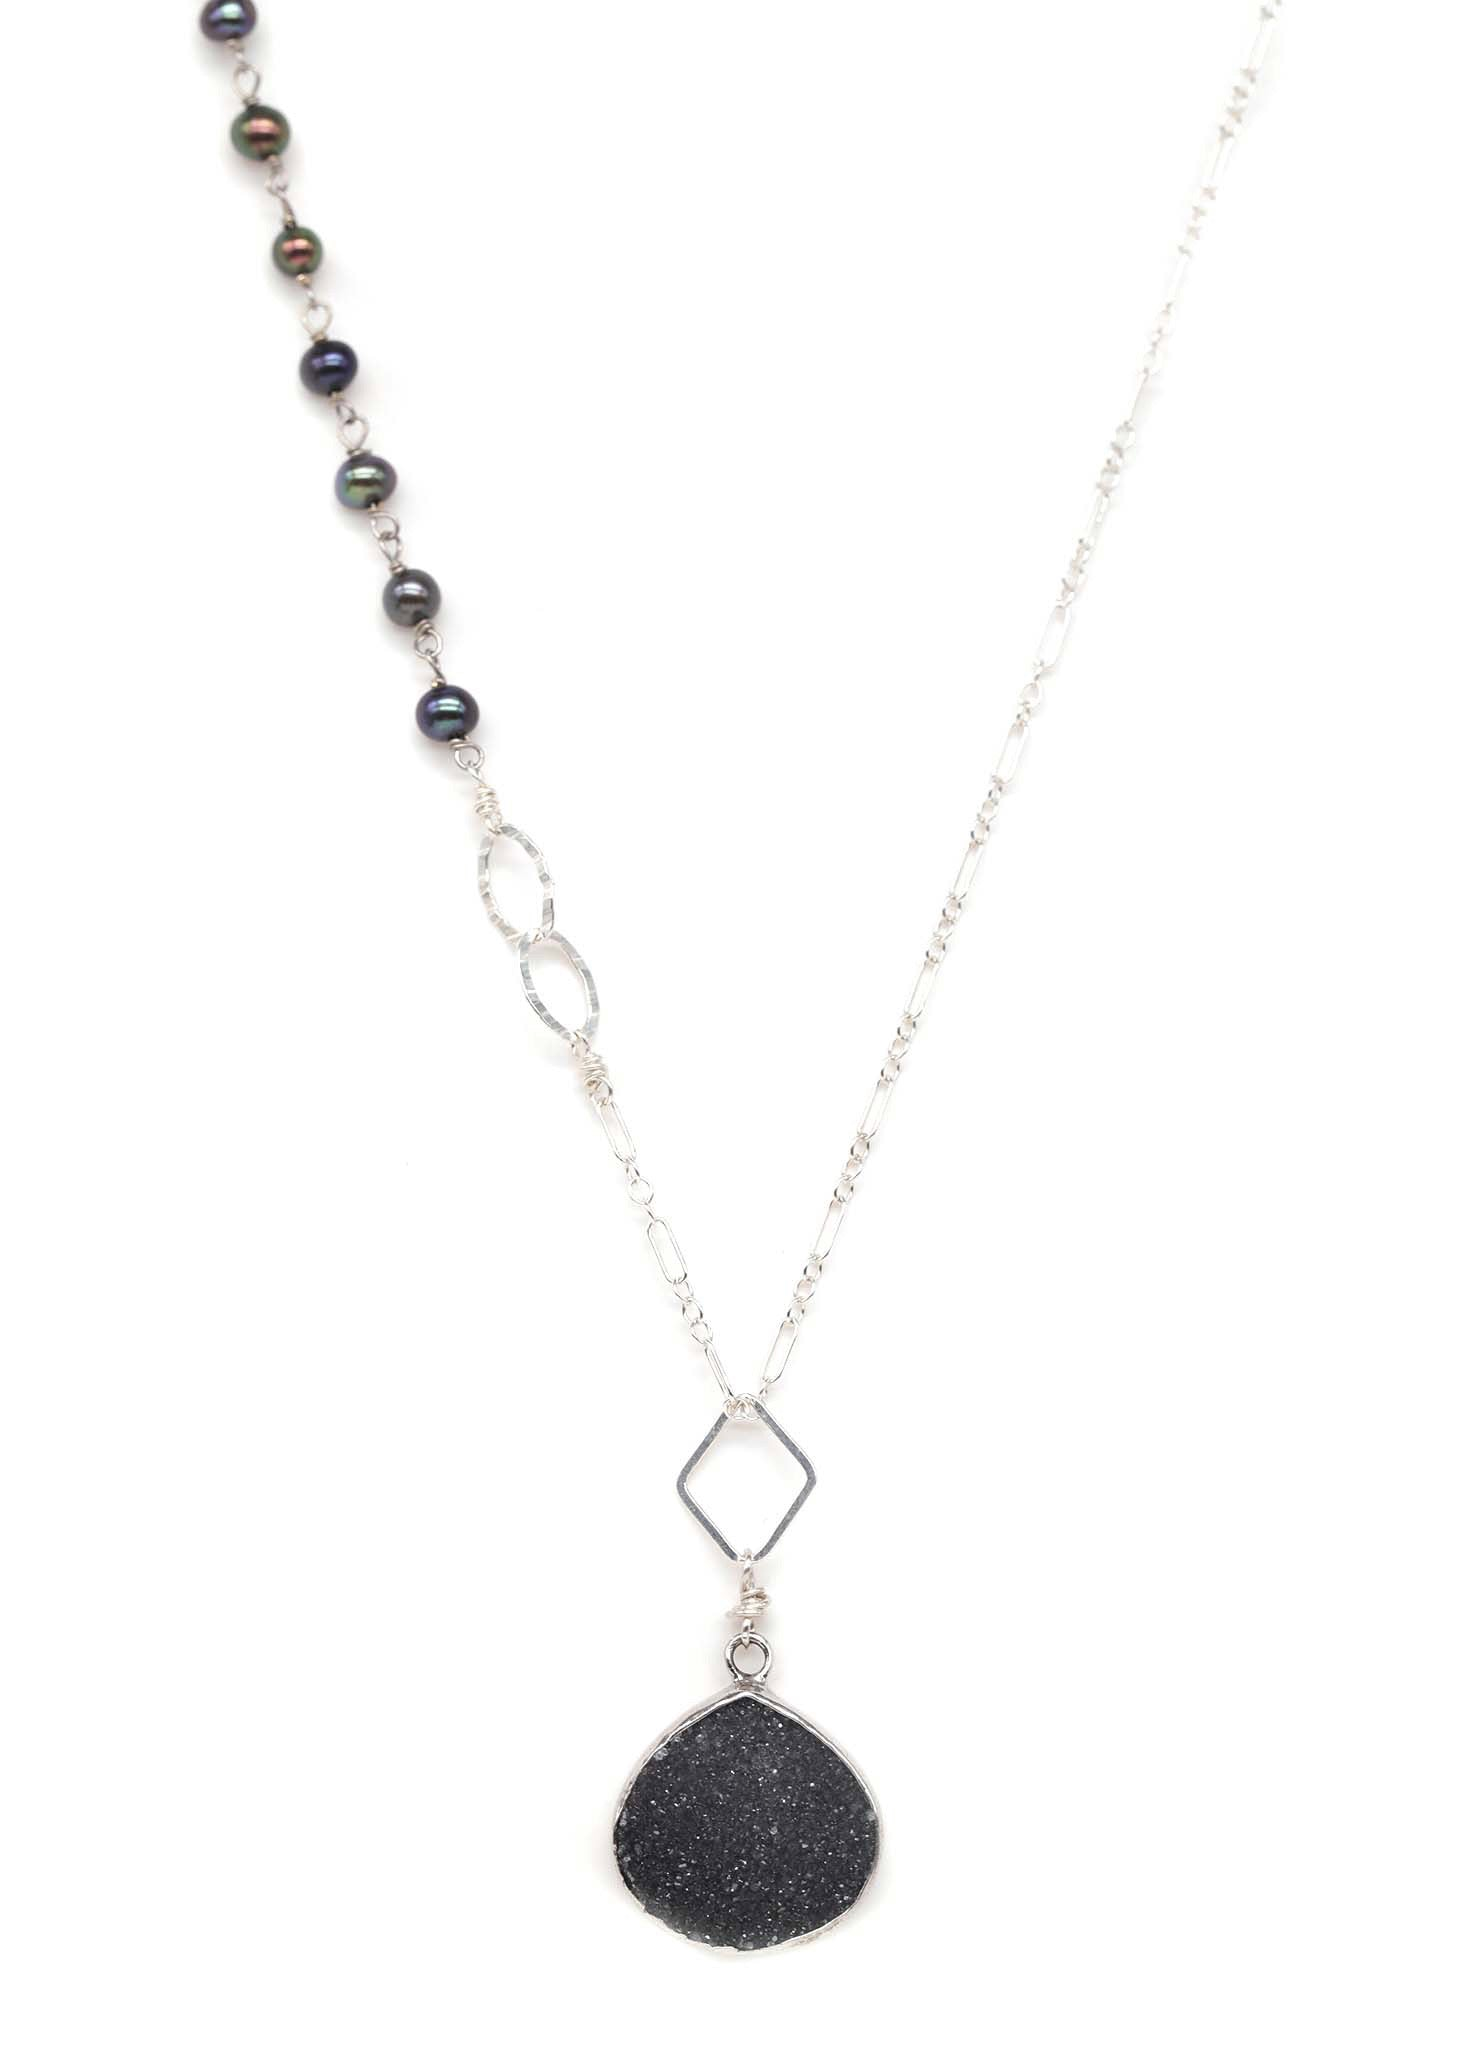 Dark Midnight Druzy necklace